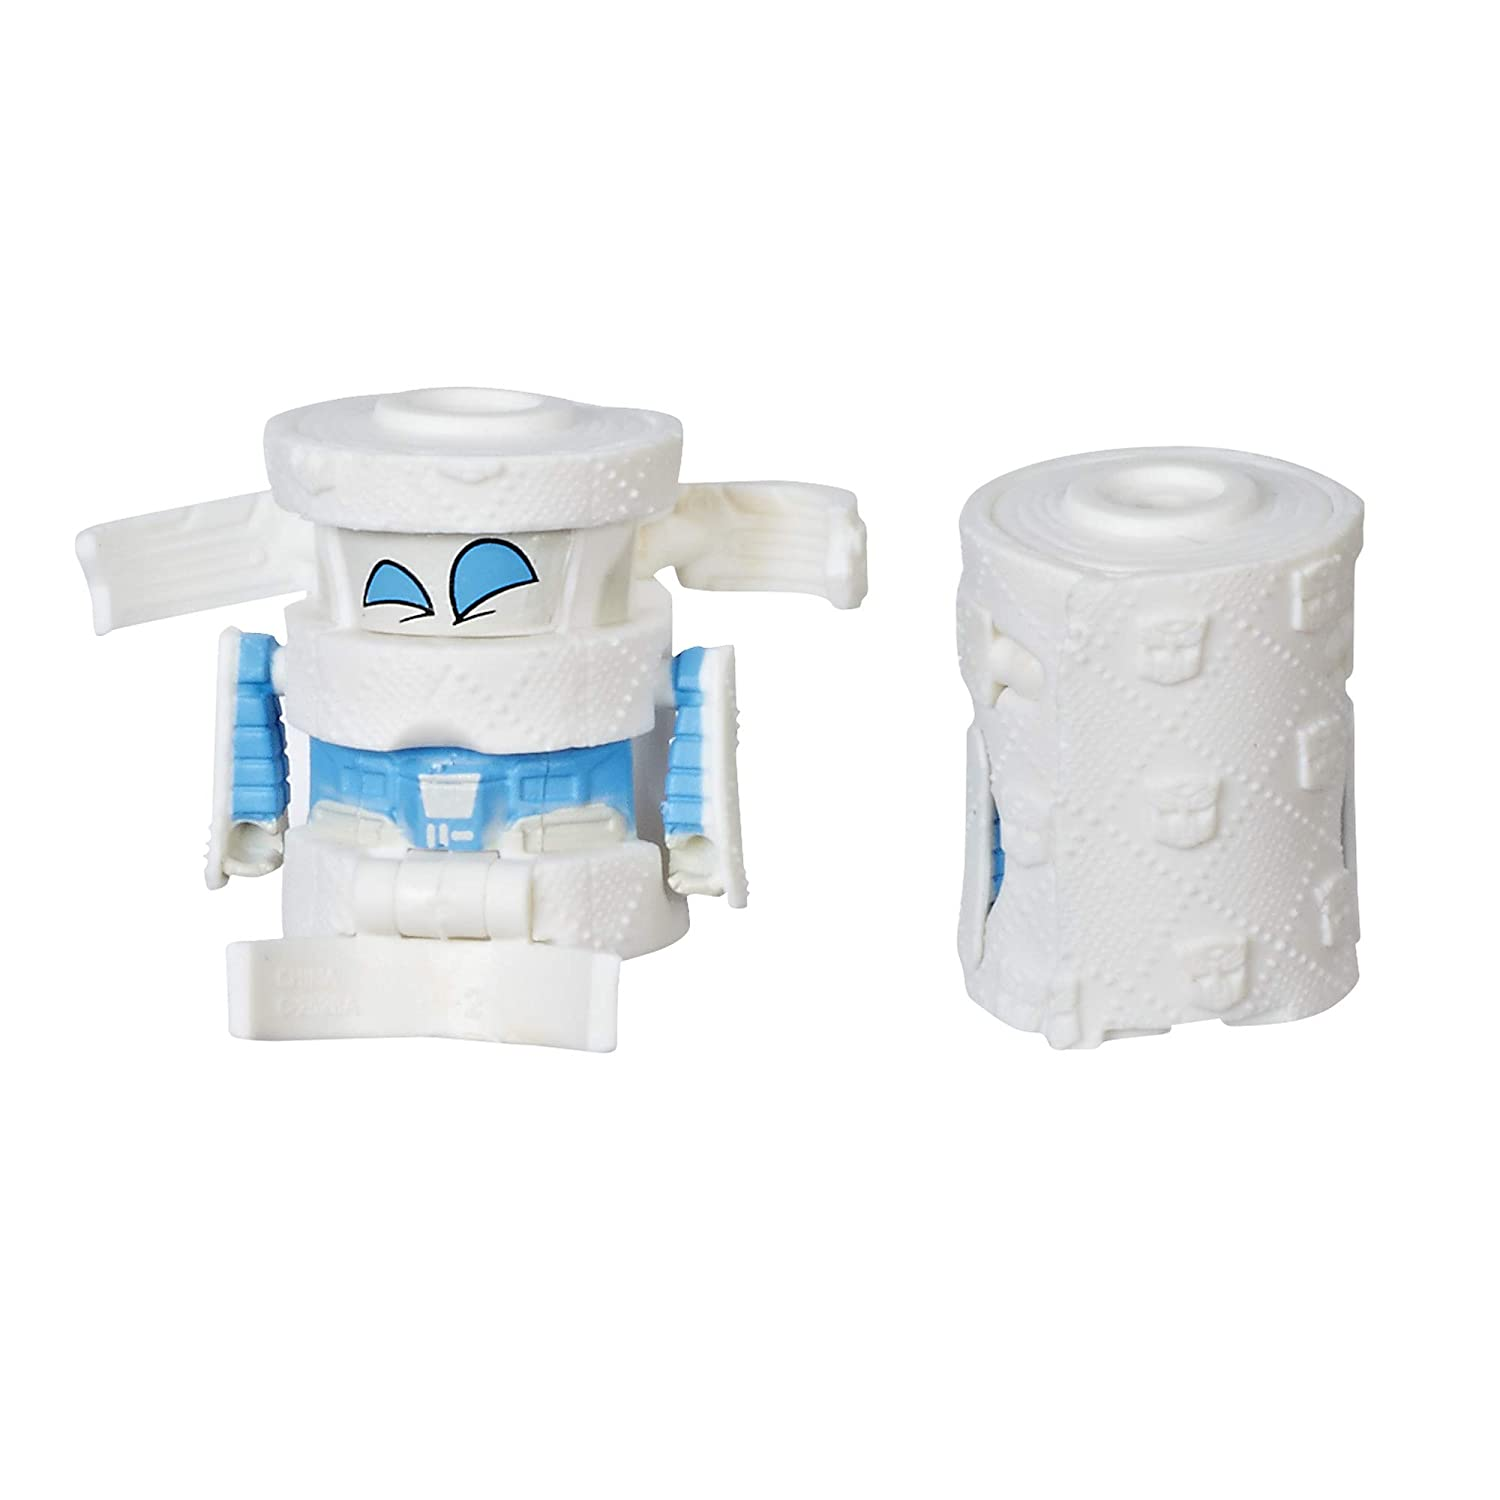 Hasbro E4137AS00 Transformers BotBots Toys Series 1 Toilet Troop 5-Pack Mystery 2-in-1 Collectible Figures